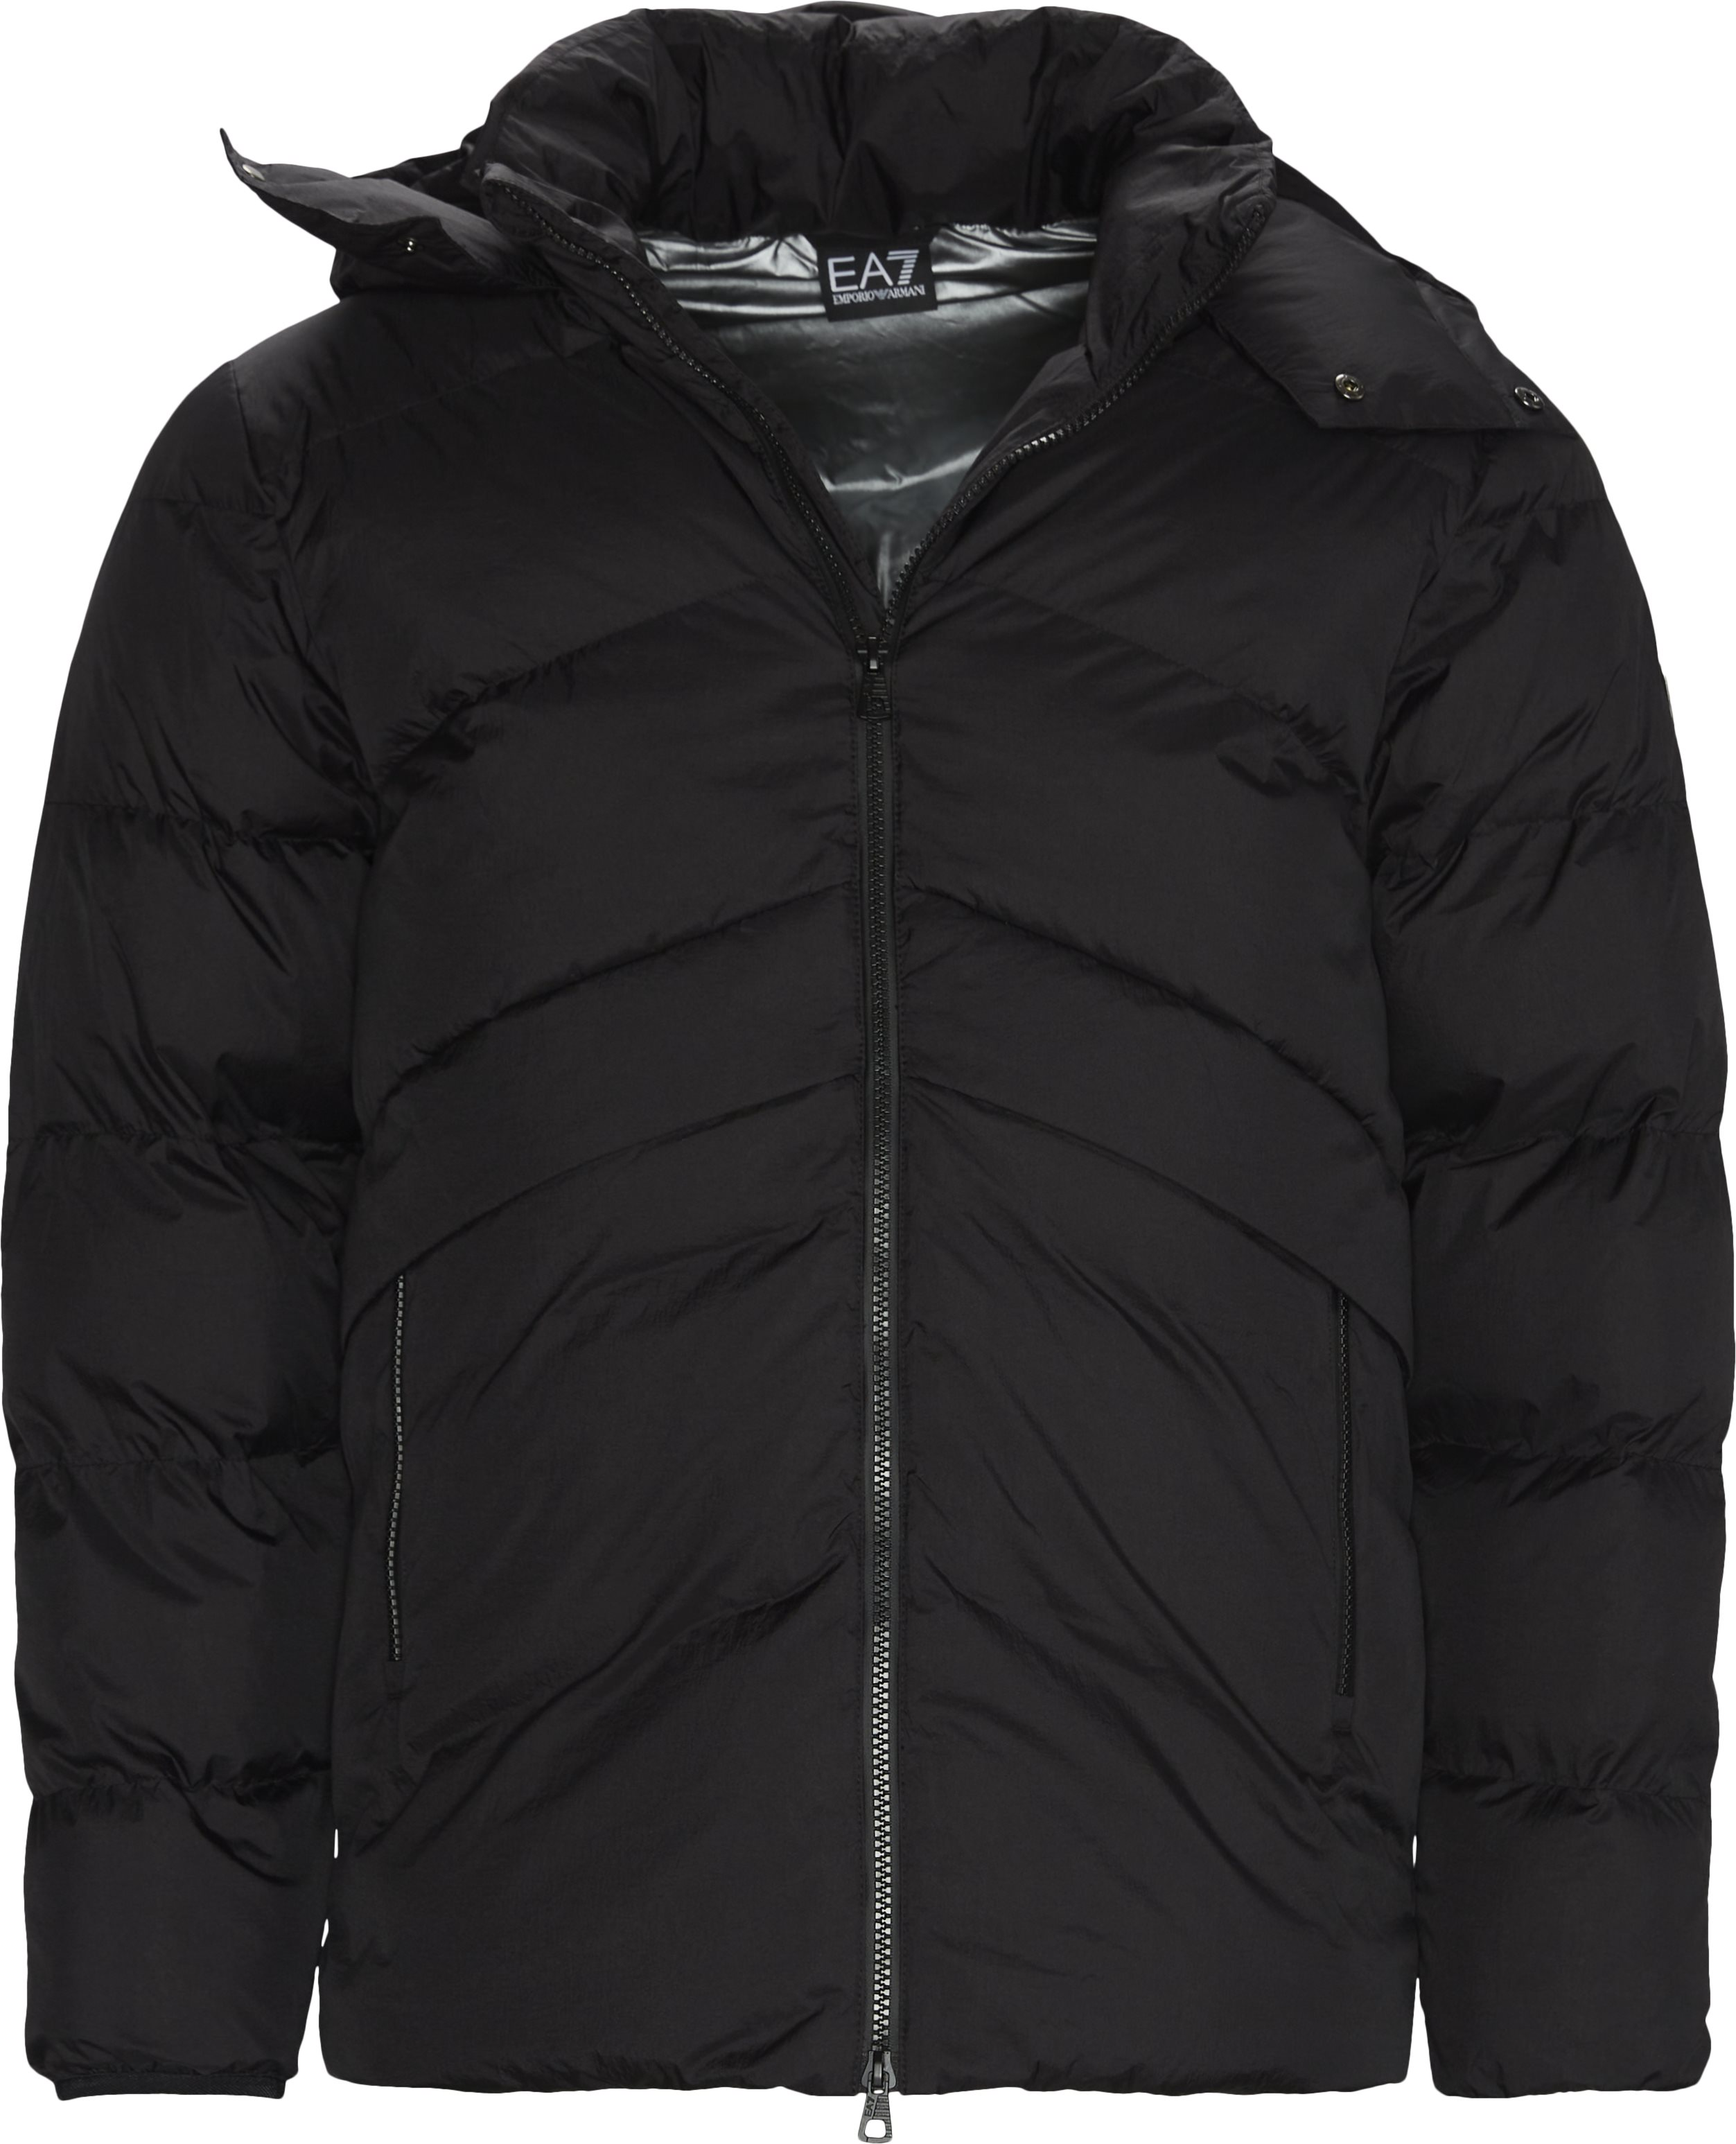 PN8CZ Jacket - Jackets - Regular - Black